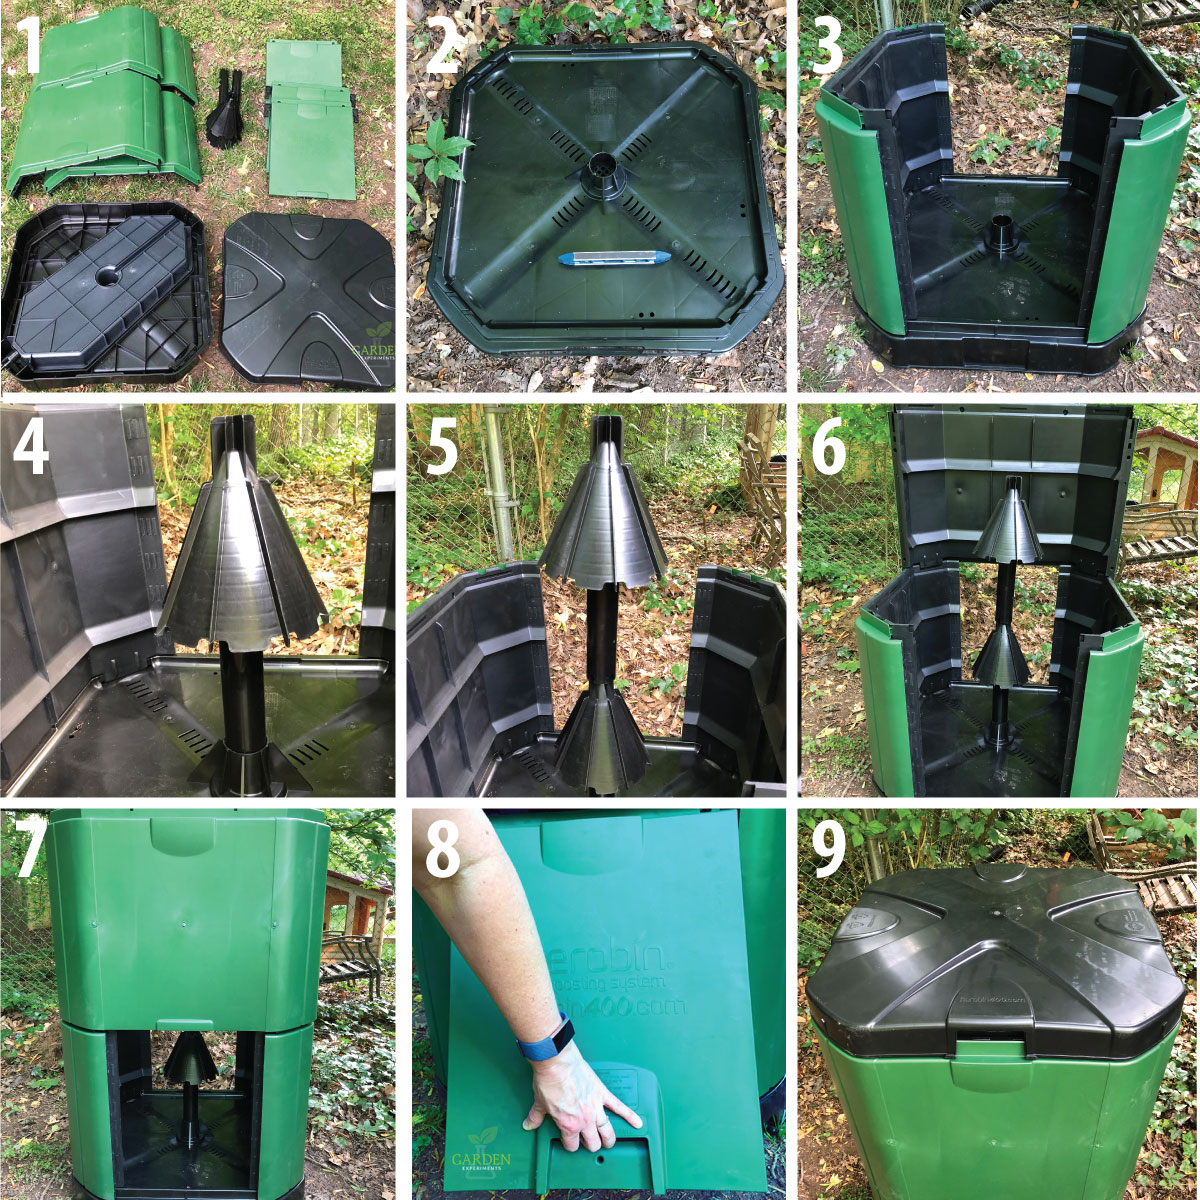 Steps to assemble the Aerobin 400 Composter